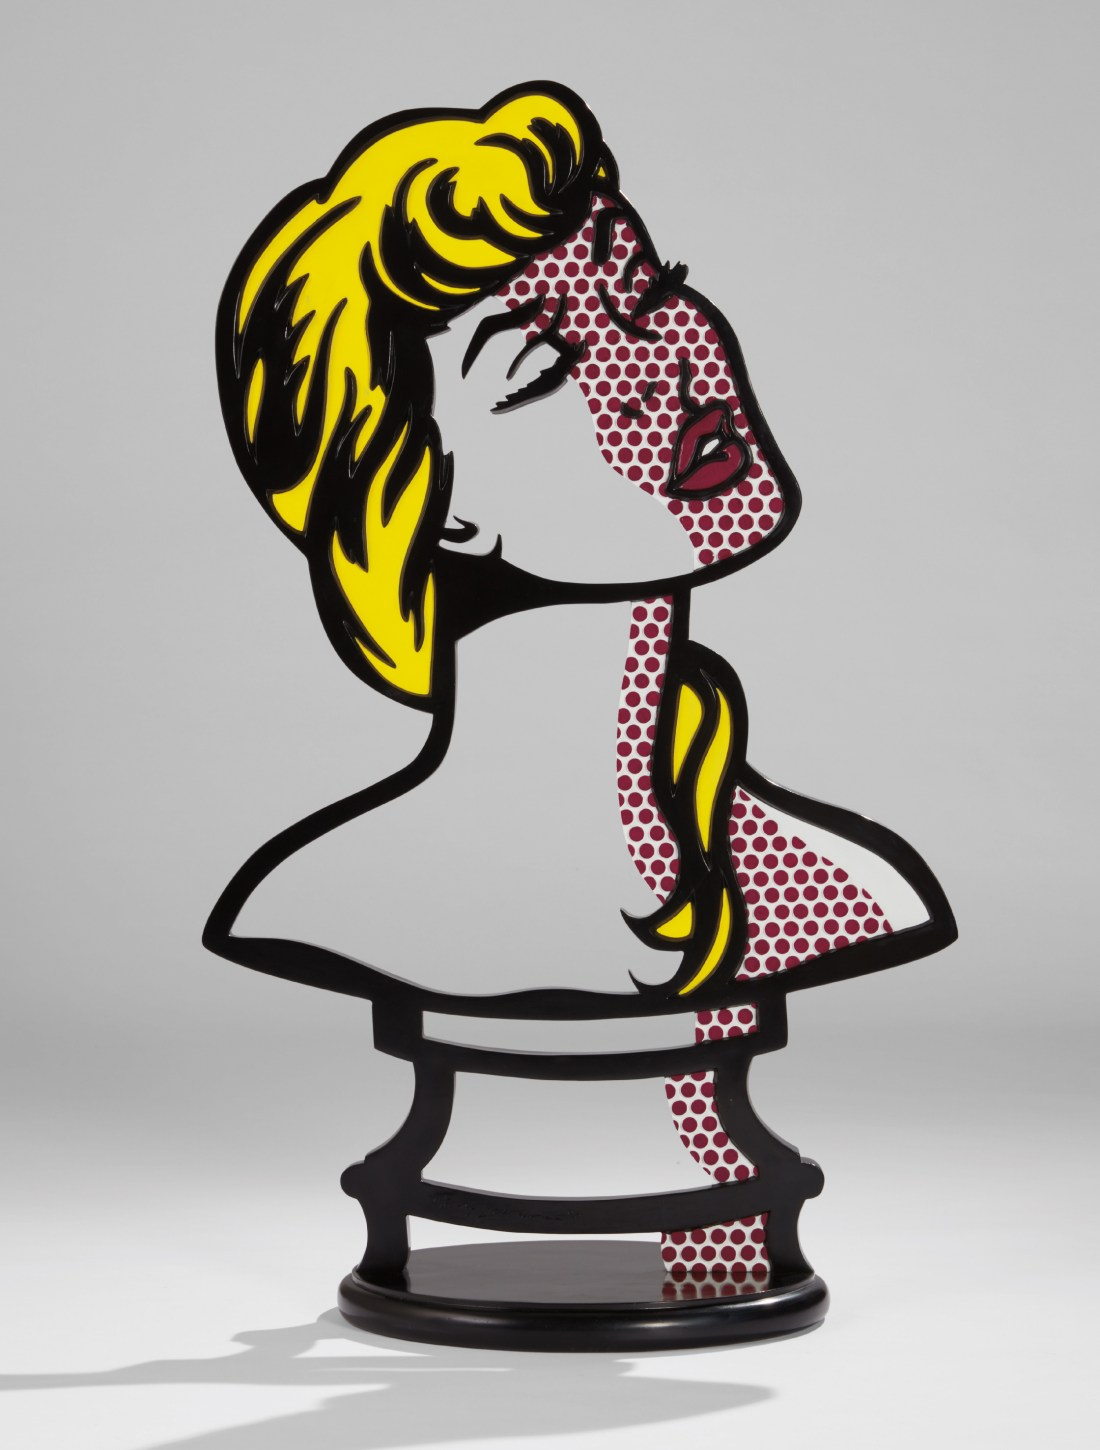 Woman: Sunlight, Moonlight, a 1996 limited edition painted and patinated bronze sculpture by Roy Lichtenstein. Phillips New York sold it in May 2017 for $10.3 million, an auction record for a sculpture by the artist.